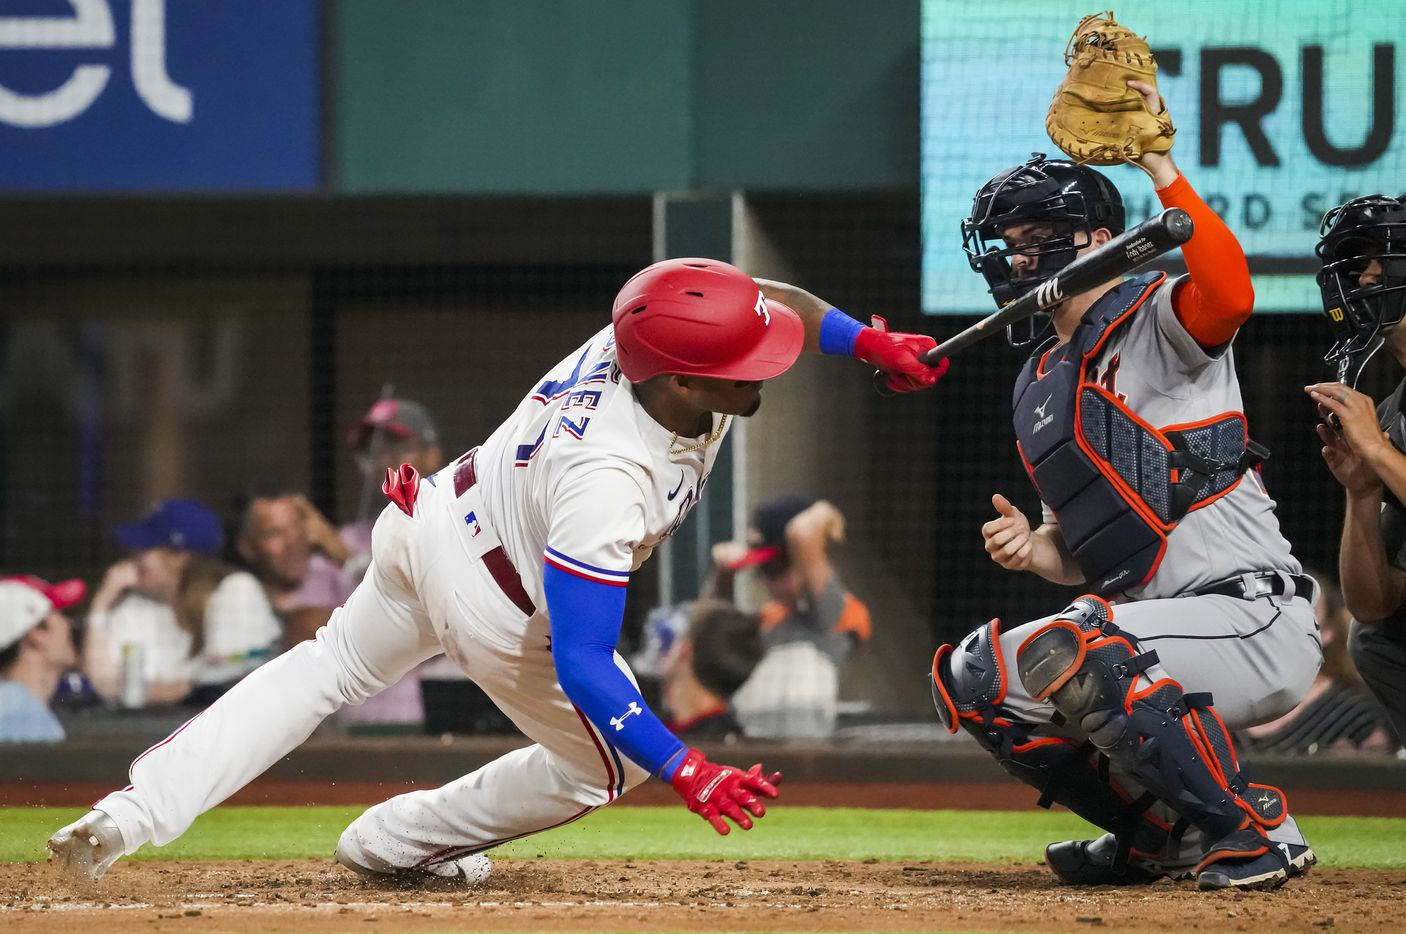 Texas Rangers first baseman Andy Ibanez is spins away from an inside pitch from Detroit Tigers relief pitcher Buck Farmer as catcher Jake Rogers reaches for the pitch during the fifth inning at Globe Life Field on Tuesday, July 6, 2021.